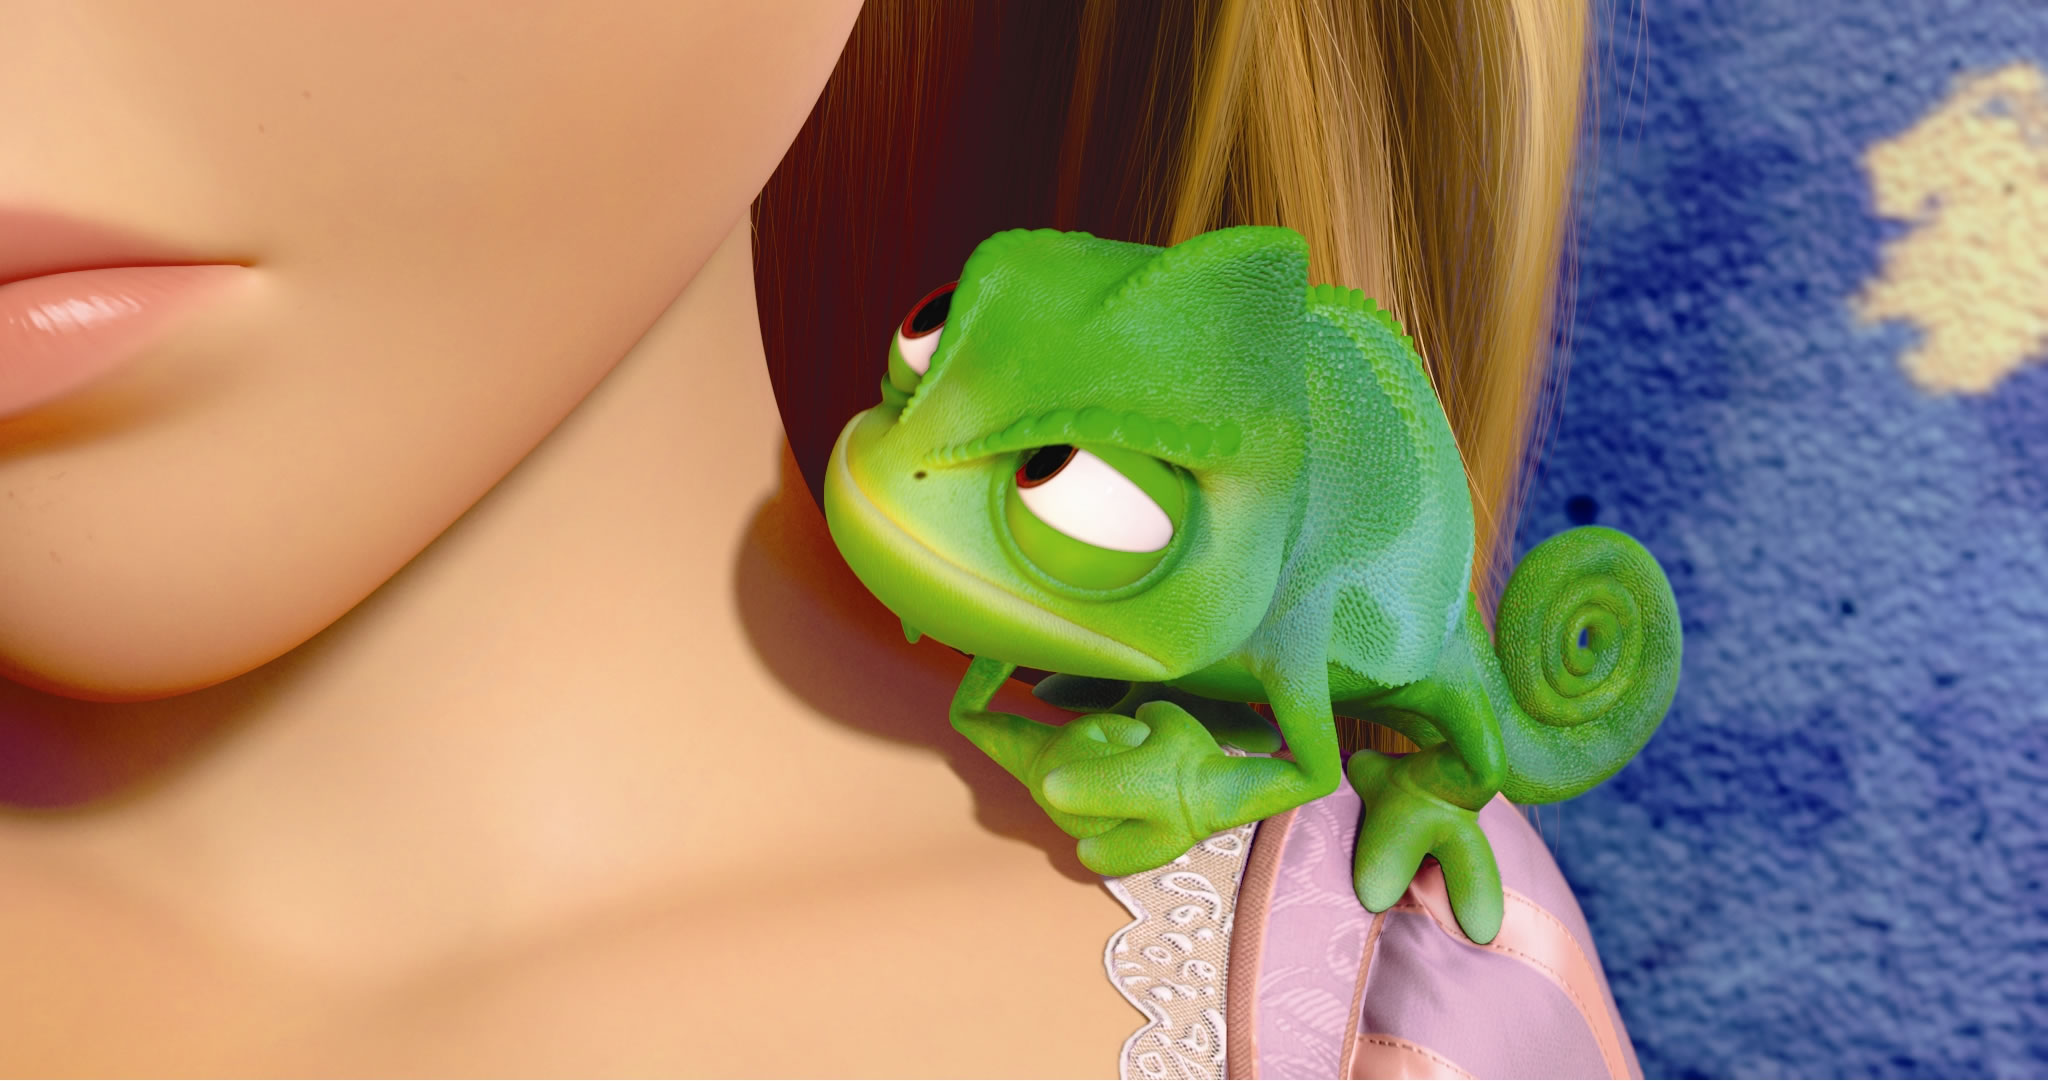 Wallpaper iphone rapunzel - Pascal The Chameleon From Tangled Wallpaper Click Picture For High Resolution Hd Wallpaper